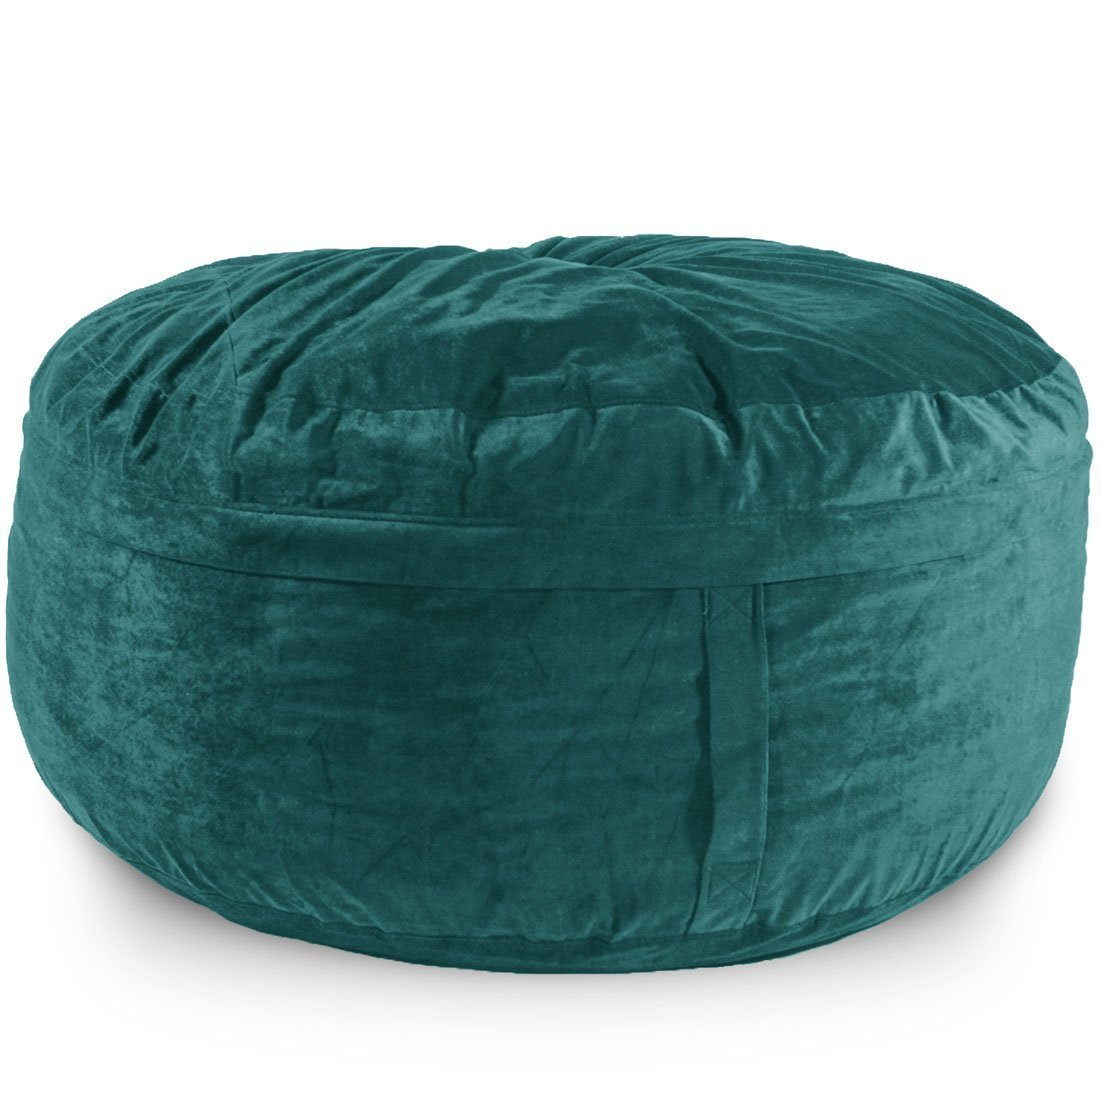 Teal Bean Bag Chair  Home Furniture Design